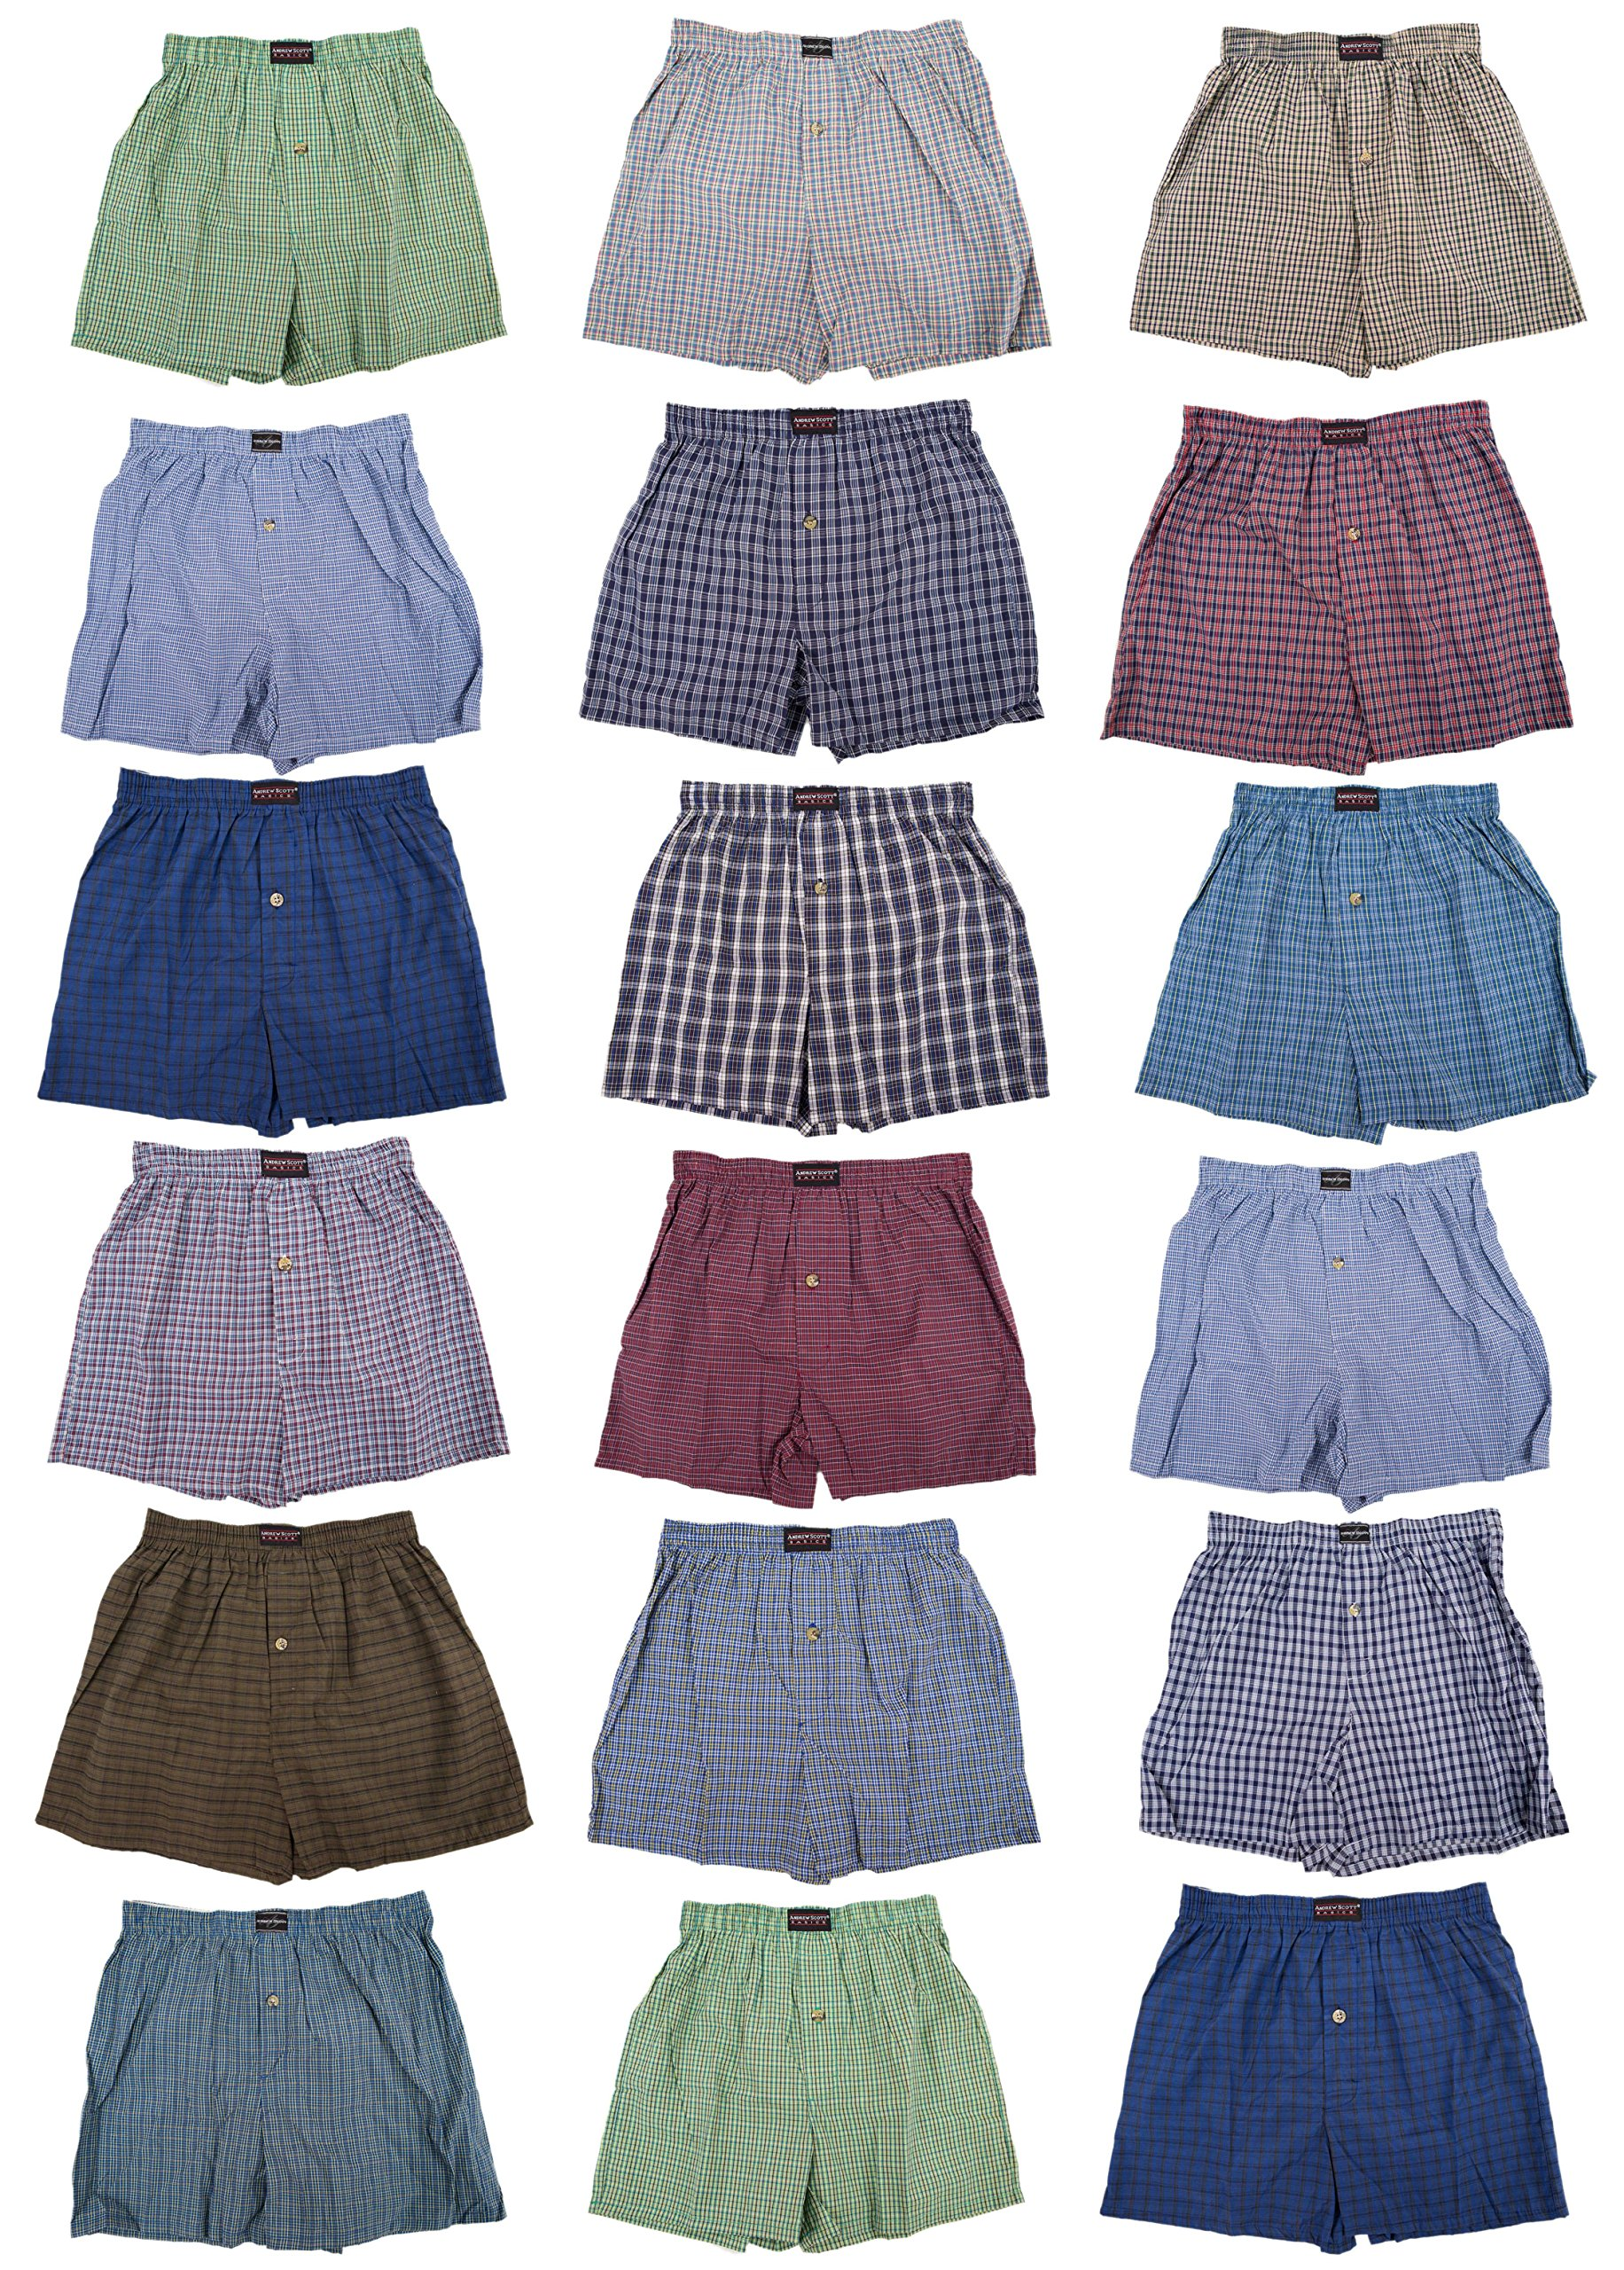 Classic Basics Men's 12 Pack Woven Boxers Sleep Shorts Travel Pack Collection (XL (40-42 ), Bonus Pack of 18 - Assorted Patterns)